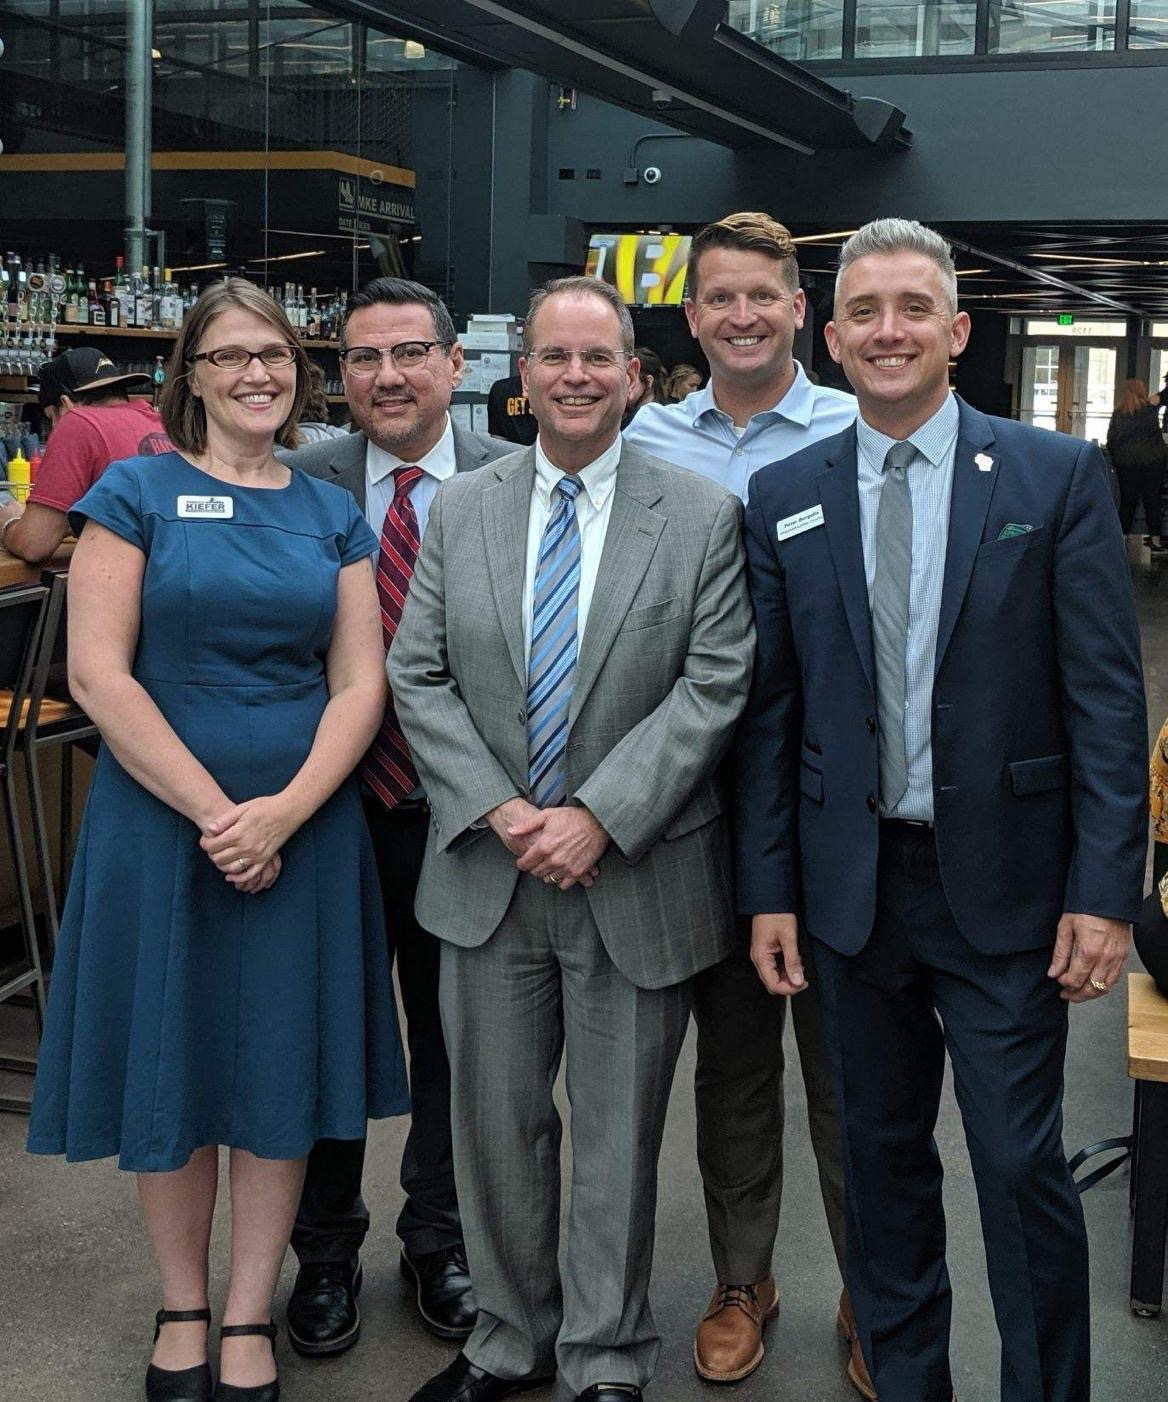 Rebecca Kiefer, Israel Ramon, Judge William Pocan, Brett Blomme, and Pete Burgelis all stopped in and mingled with LGBT Bar Members at our August Happy Hour.